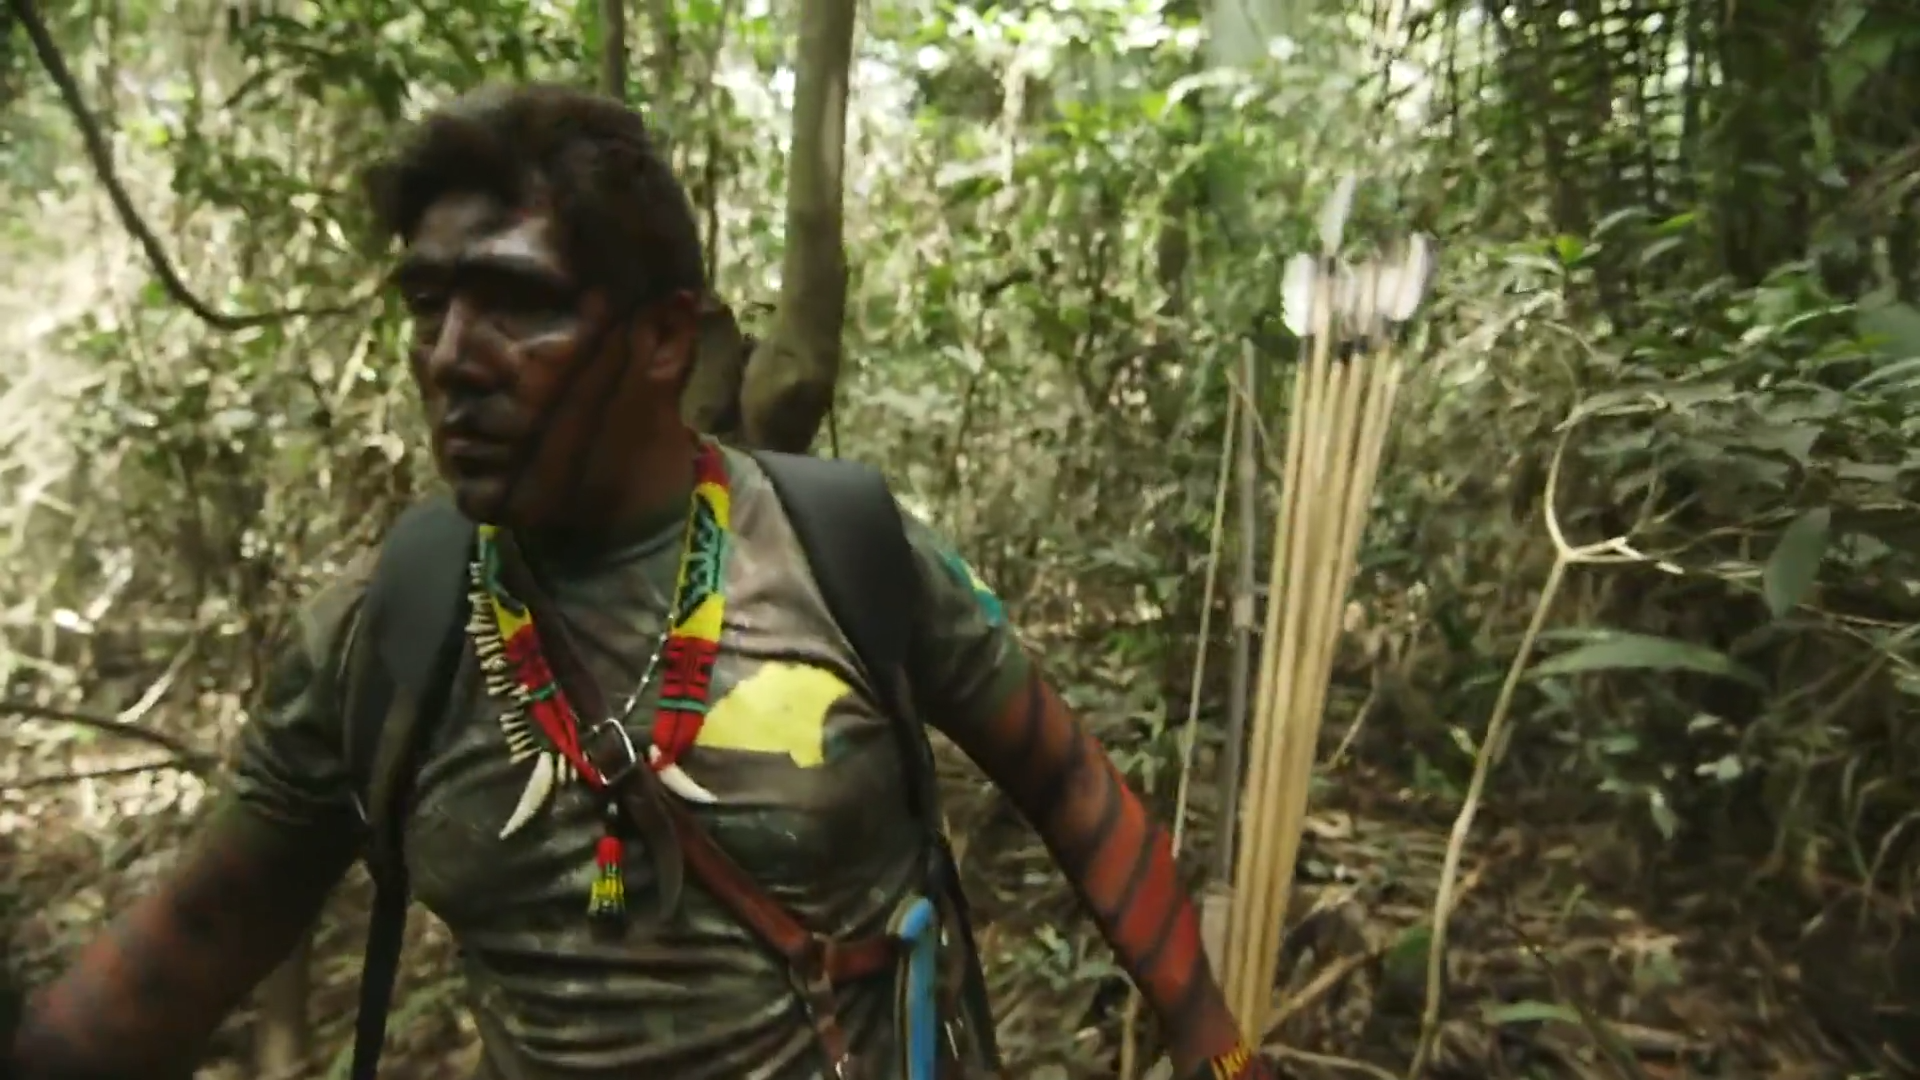 Modern technology and voice of women empower Amazon tribe to combat illegal poaching – Channel 4 News